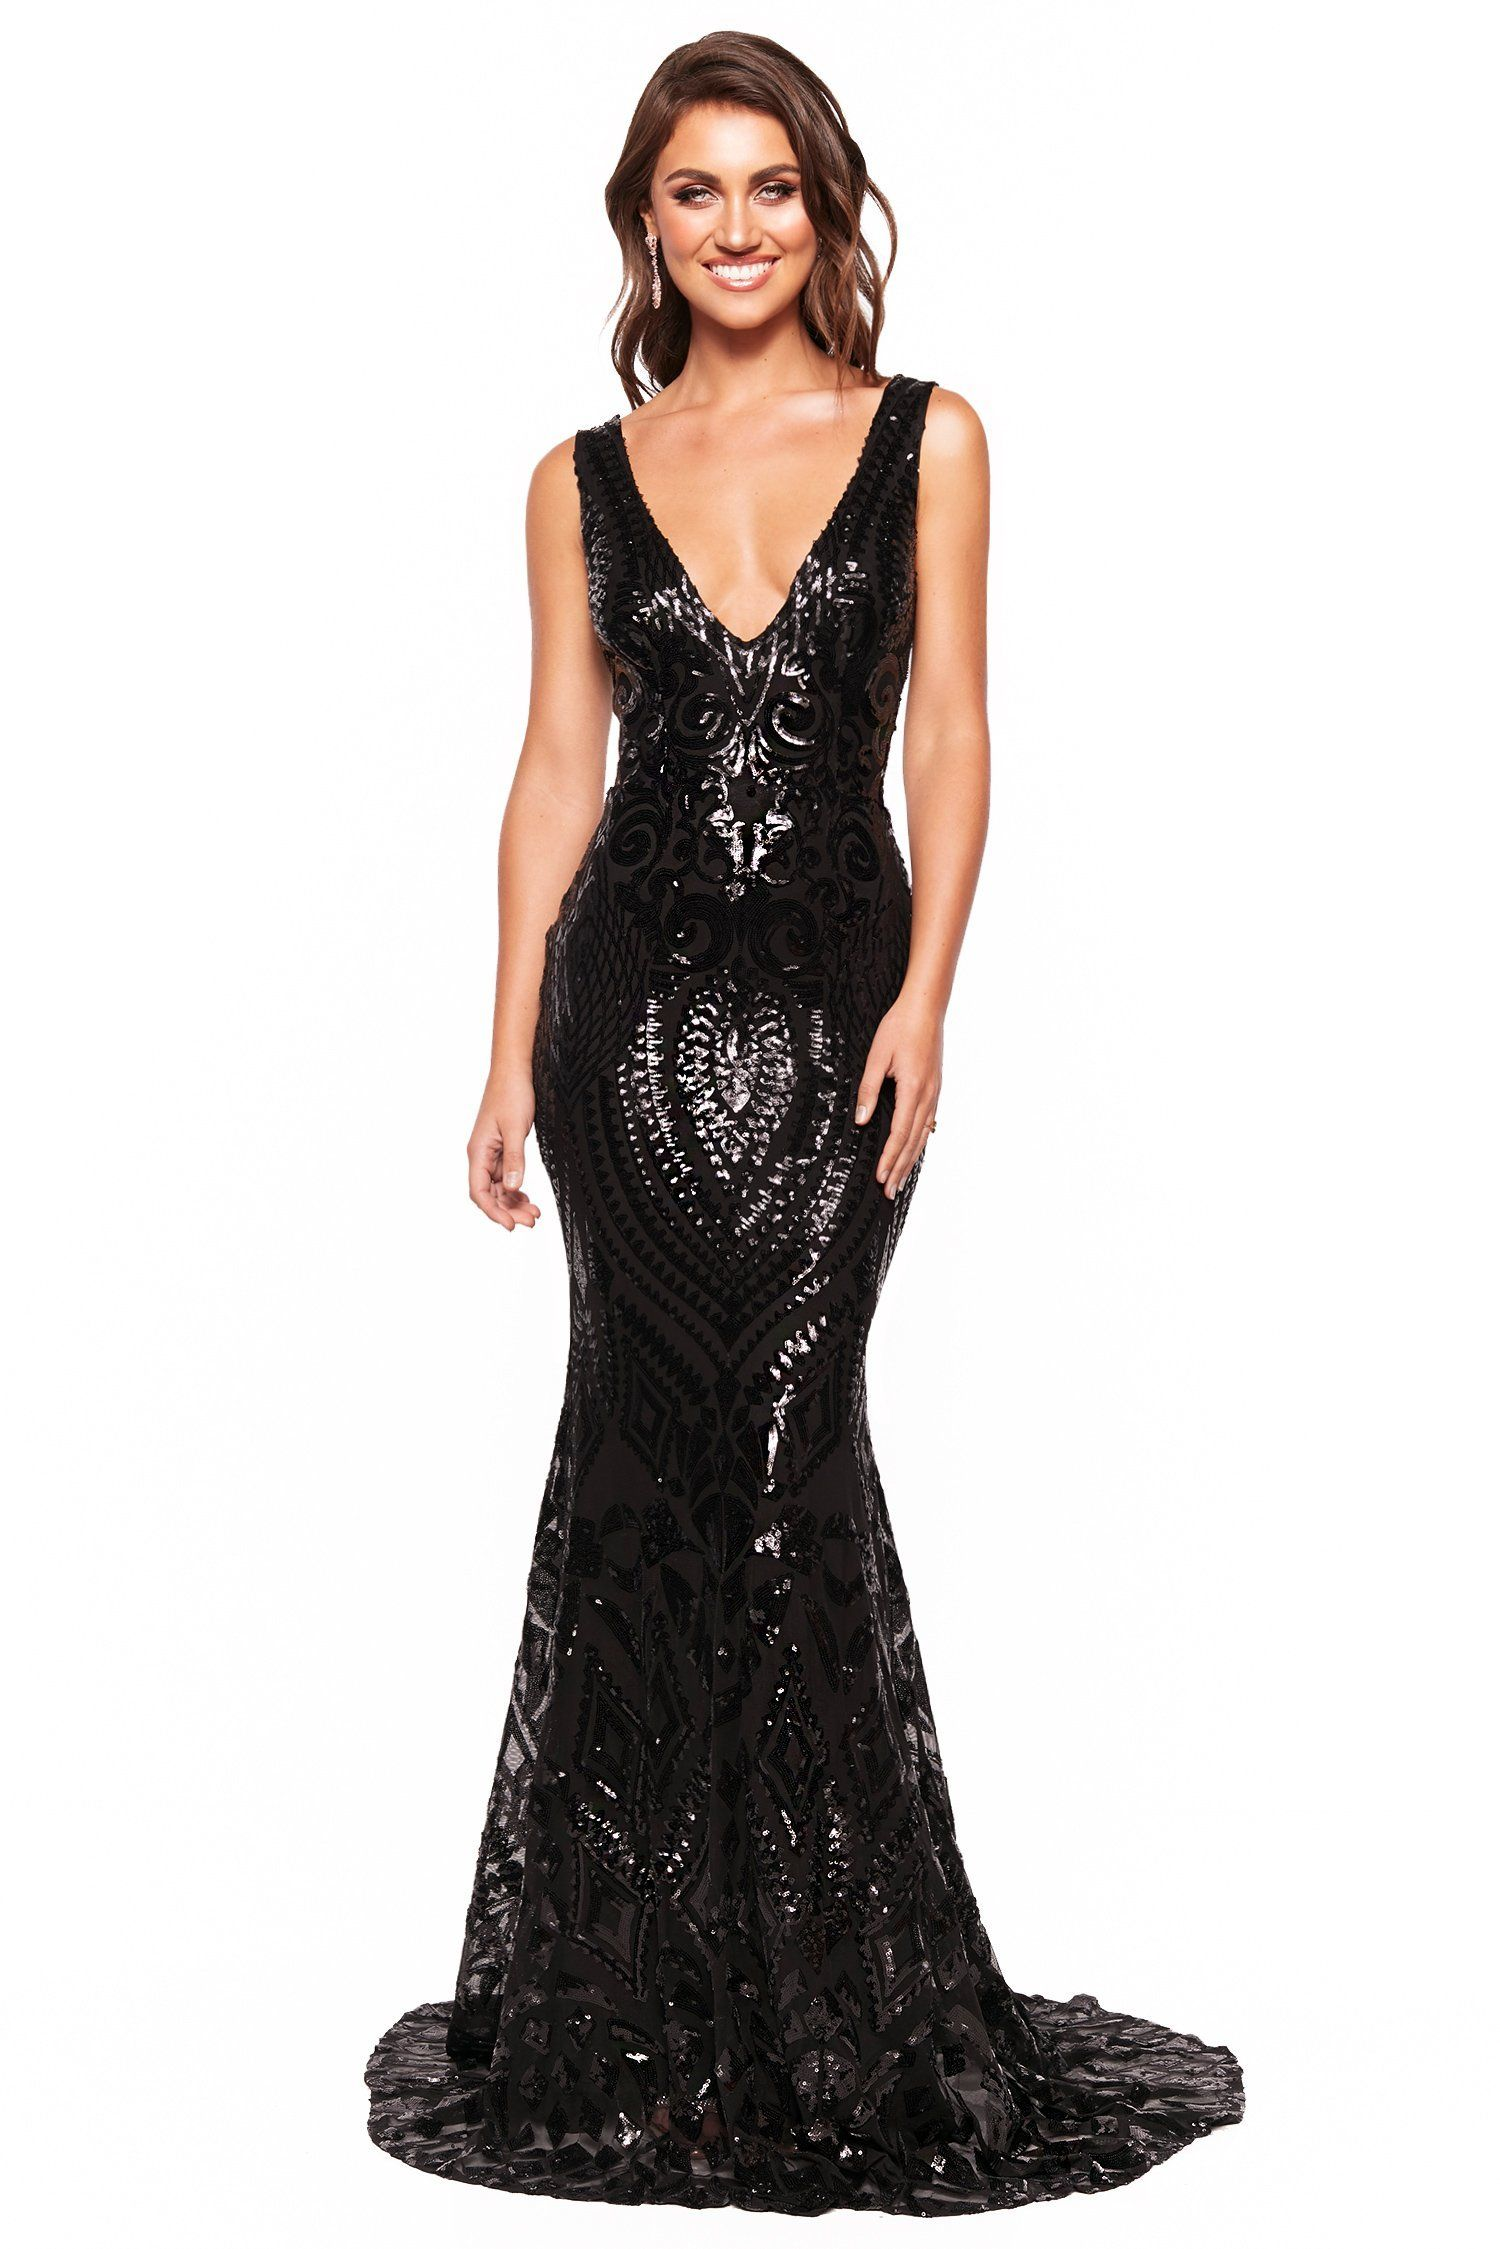 a3fb4ec4 A&N Luxe Crown Sequin Gown - Black in 2019 | Prom dresses | Black ...